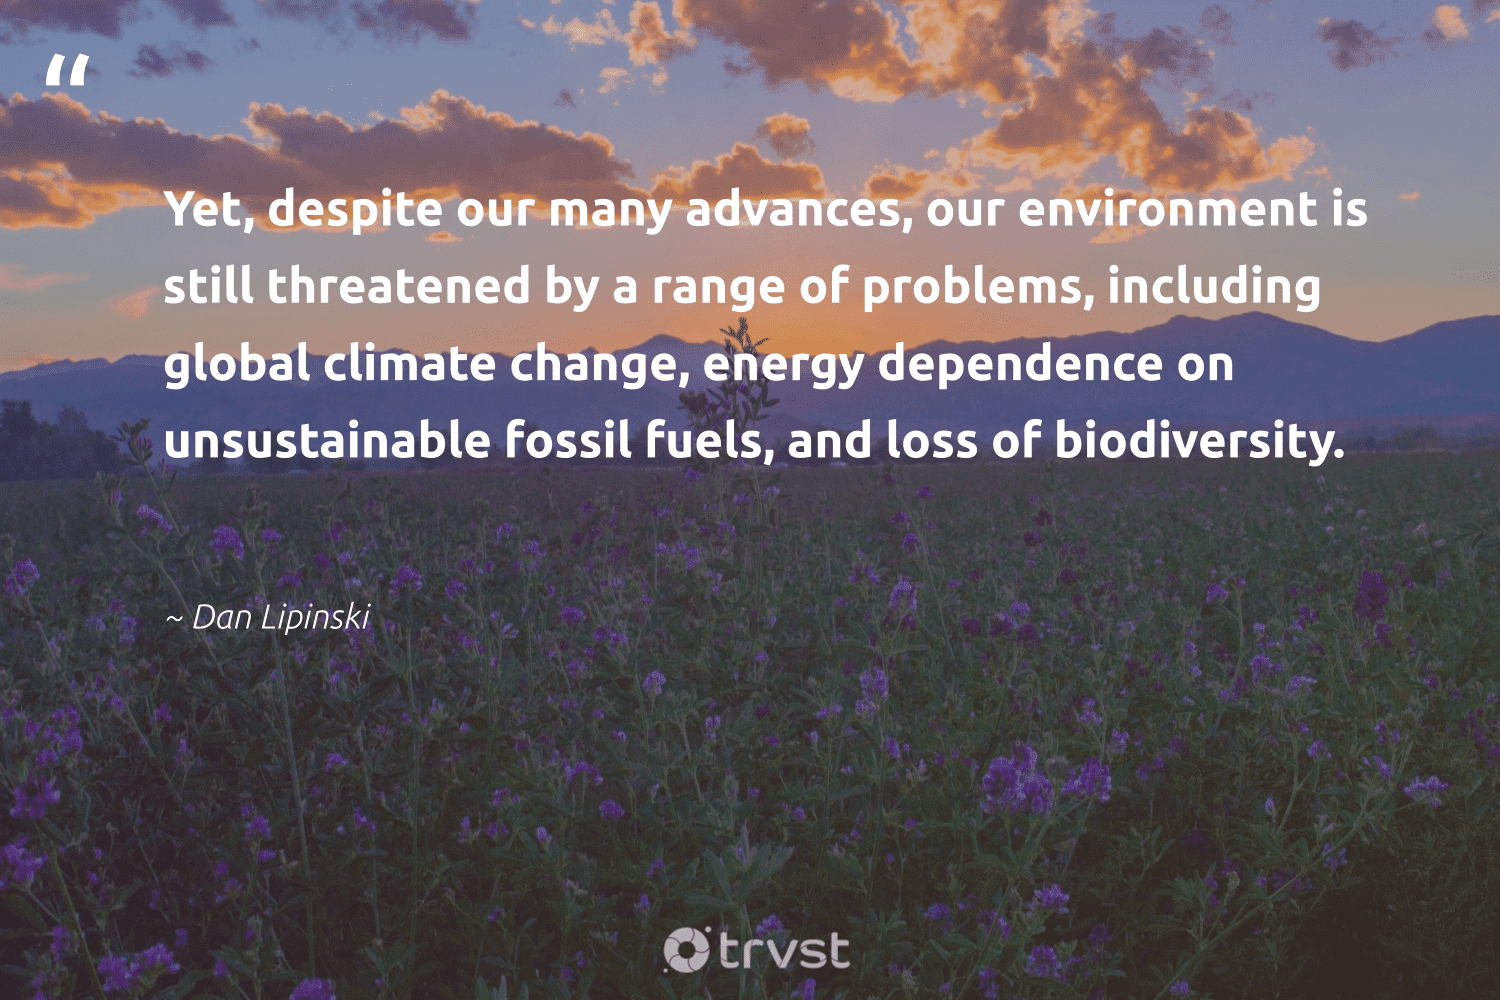 """""""Yet, despite our many advances, our environment is still threatened by a range of problems, including global climate change, energy dependence on unsustainable fossil fuels, and loss of biodiversity.""""  - Dan Lipinski #trvst #quotes #biodiversity #environment #climatechange #energy #fossilfuels #fossil #climate #conservation #oil #bigcat"""